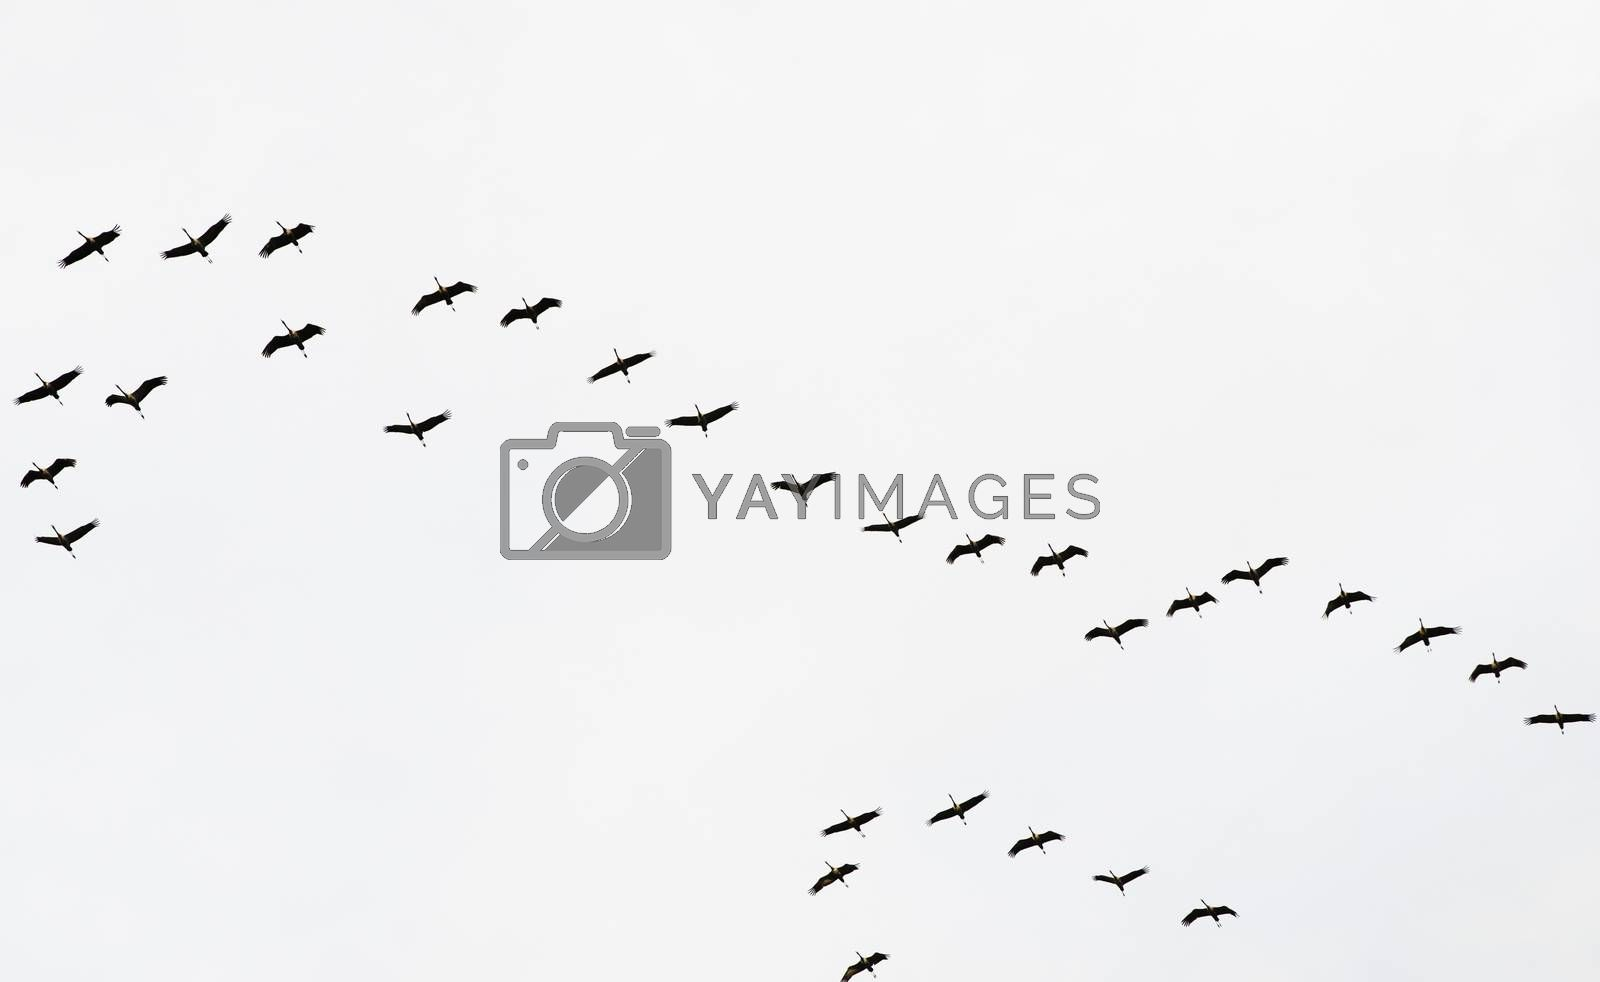 A flock of flying cranes in the sky